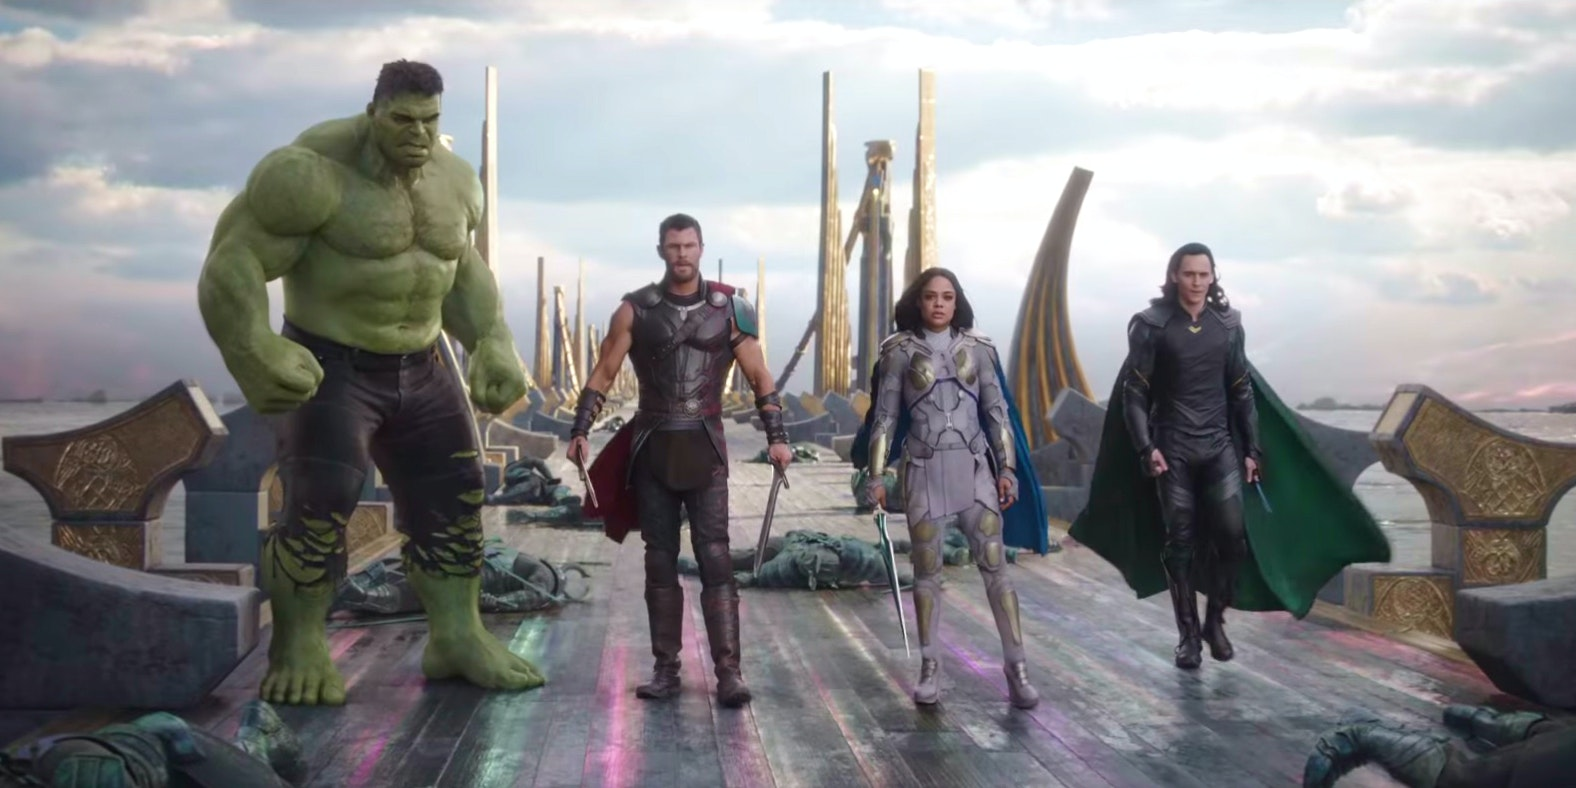 'Thor: Ragnarok' May Feature a Guardians of the Galaxy Cameo